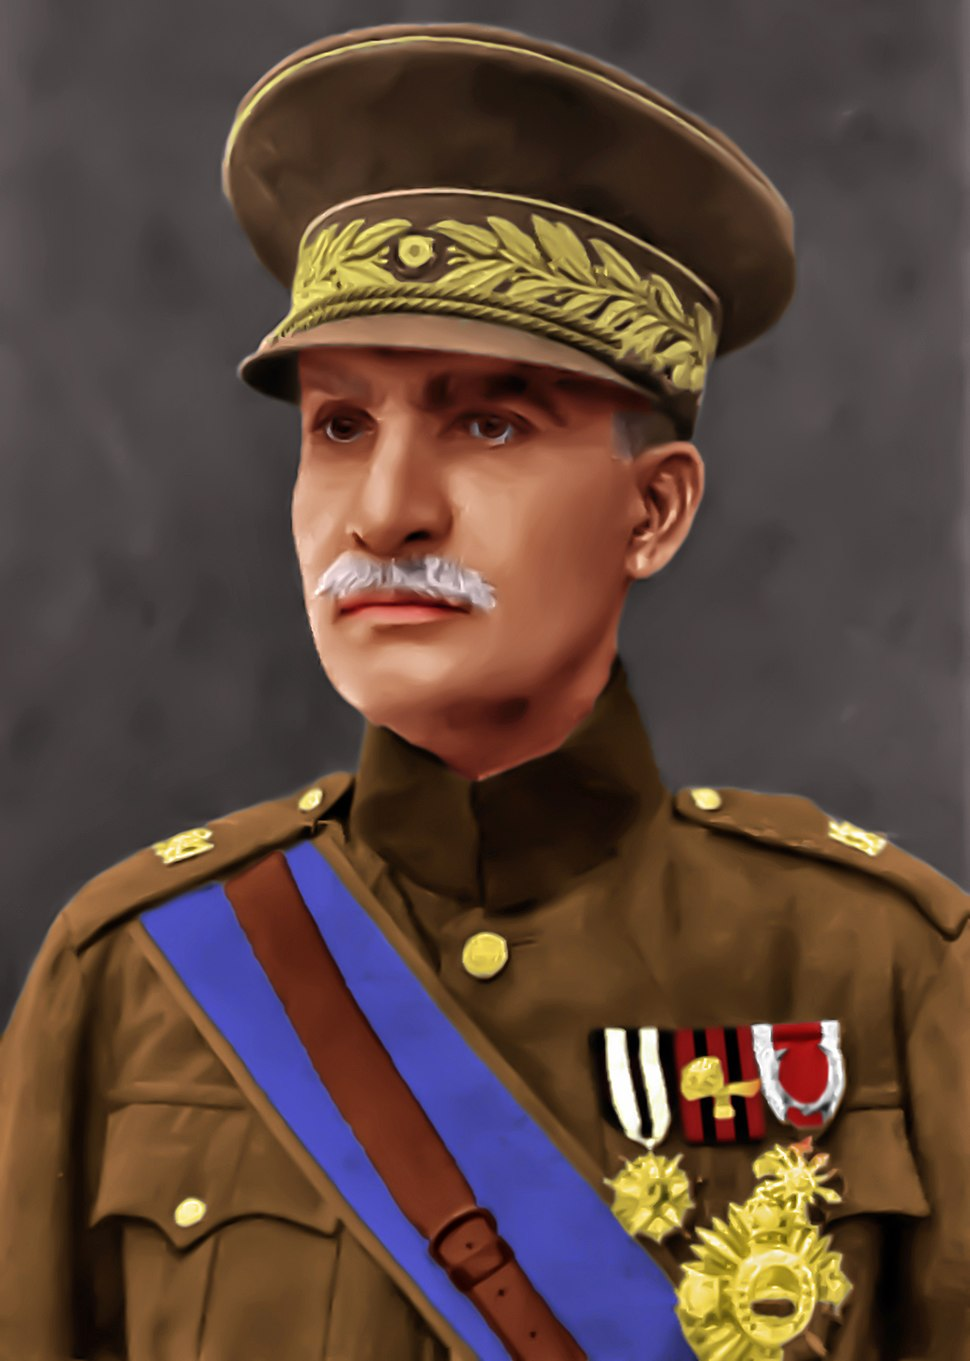 Reza Shah Pahlavi Official Portrait - Colorized 2